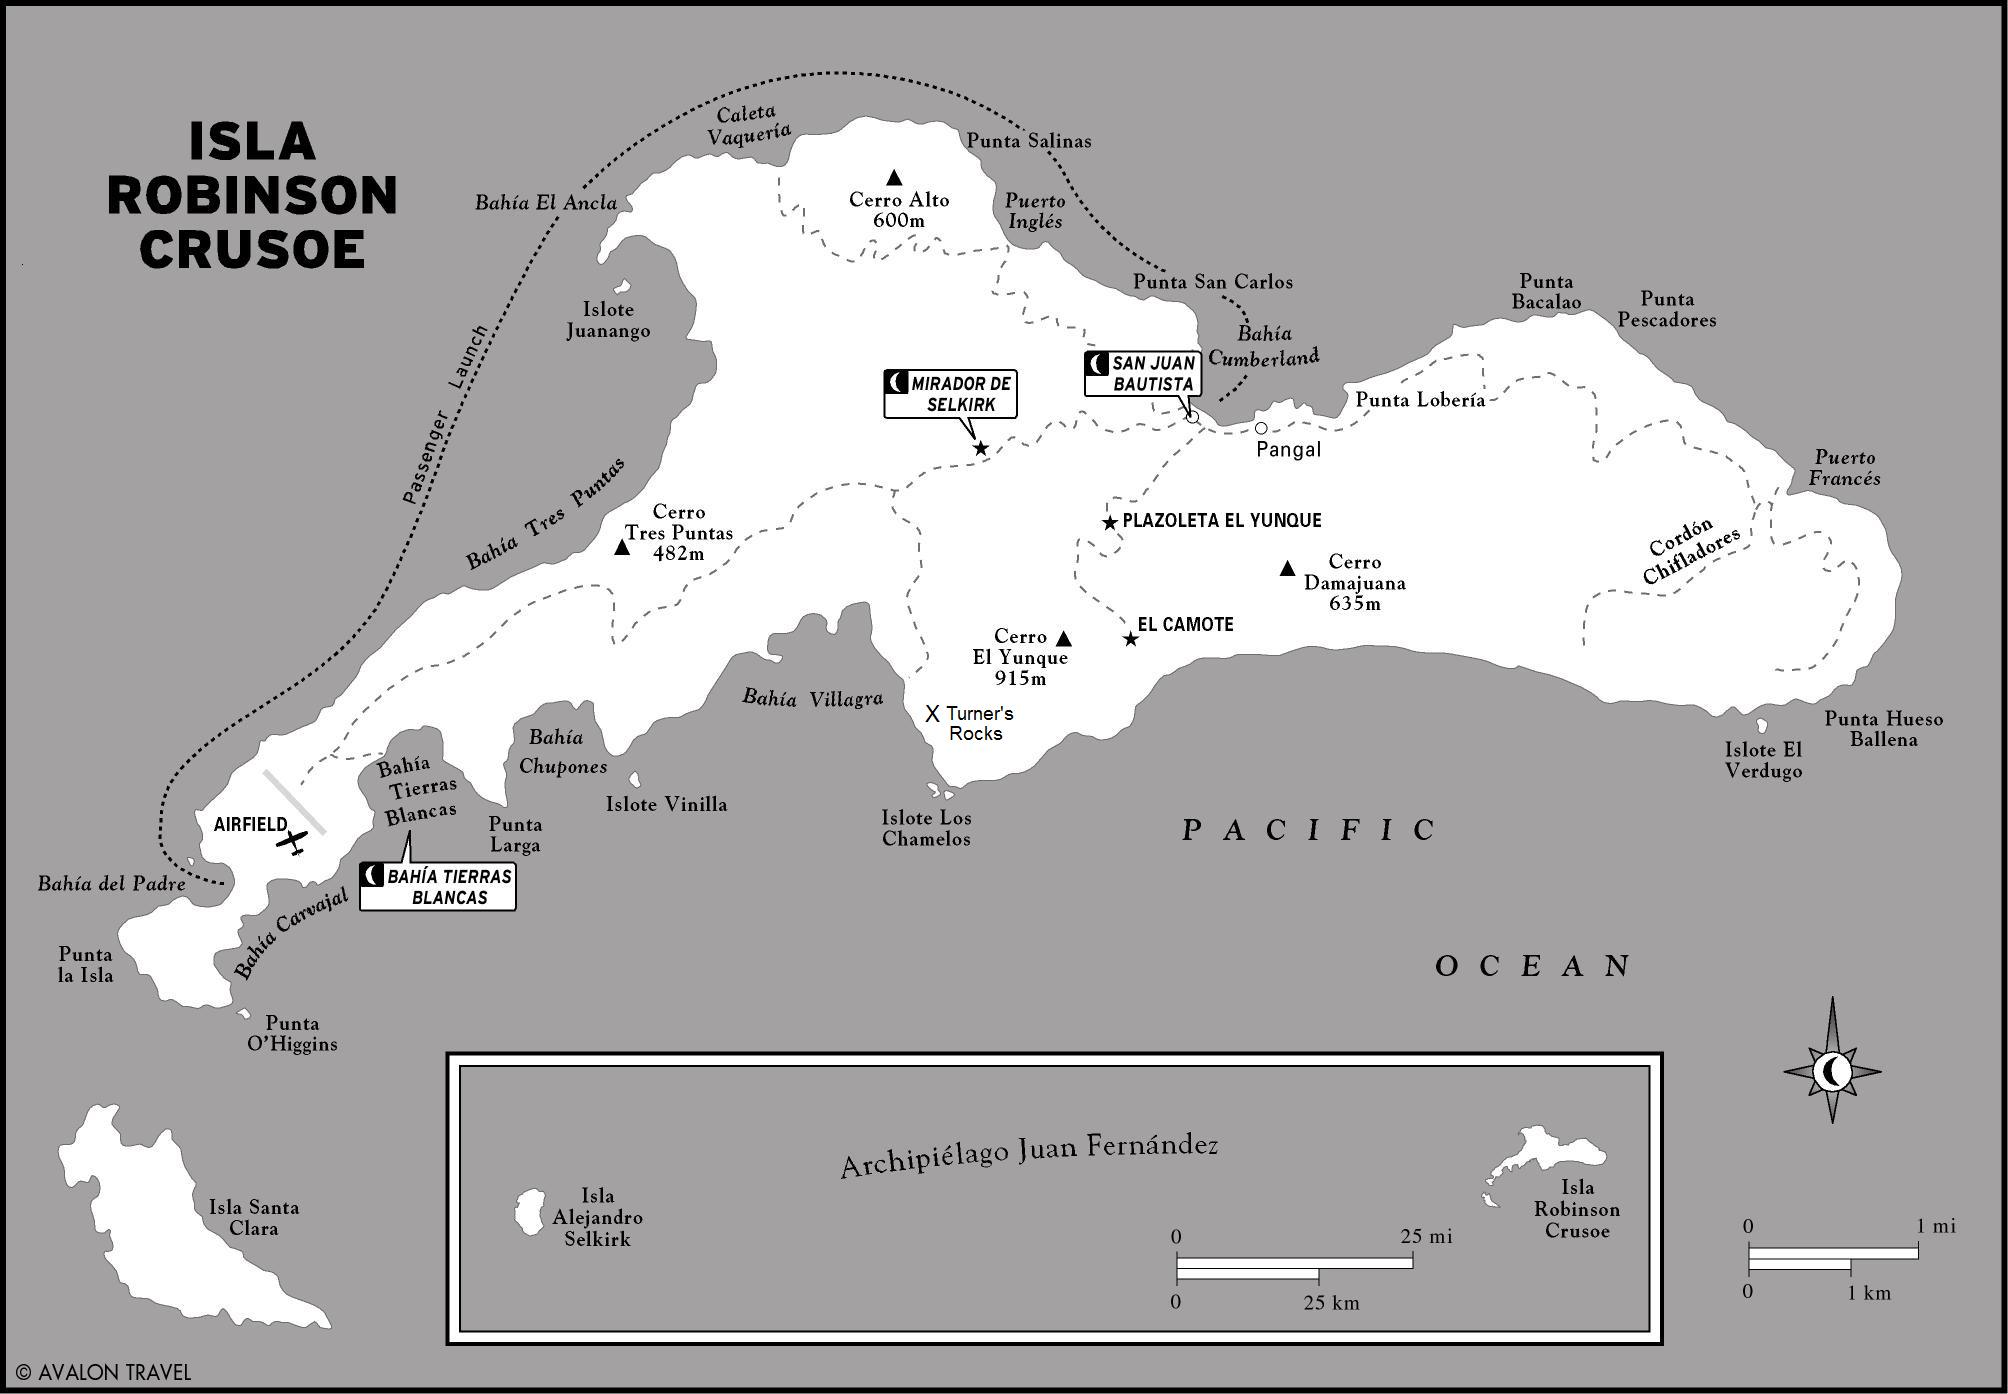 Map of Robinson Crusoe Island